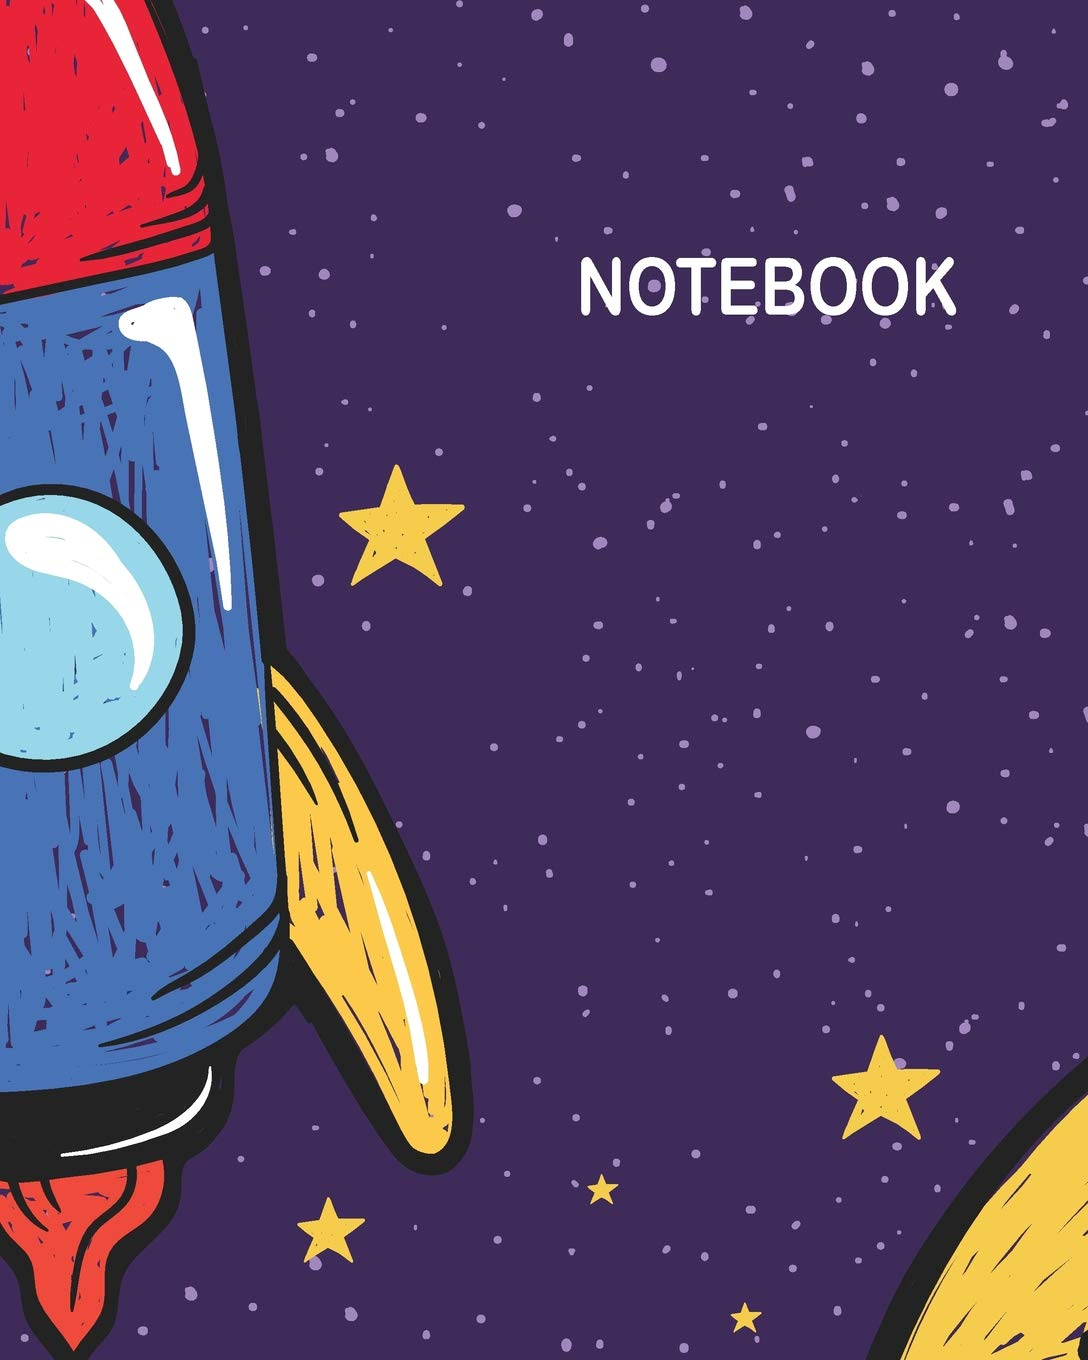 "Notebook: Rocket and space : Journal Dot-Grid, Grid, Lined, Blank No Lined: Book: Pocket Notebook Journal Diary, 120 pages, 8"" x 10"" PDF"